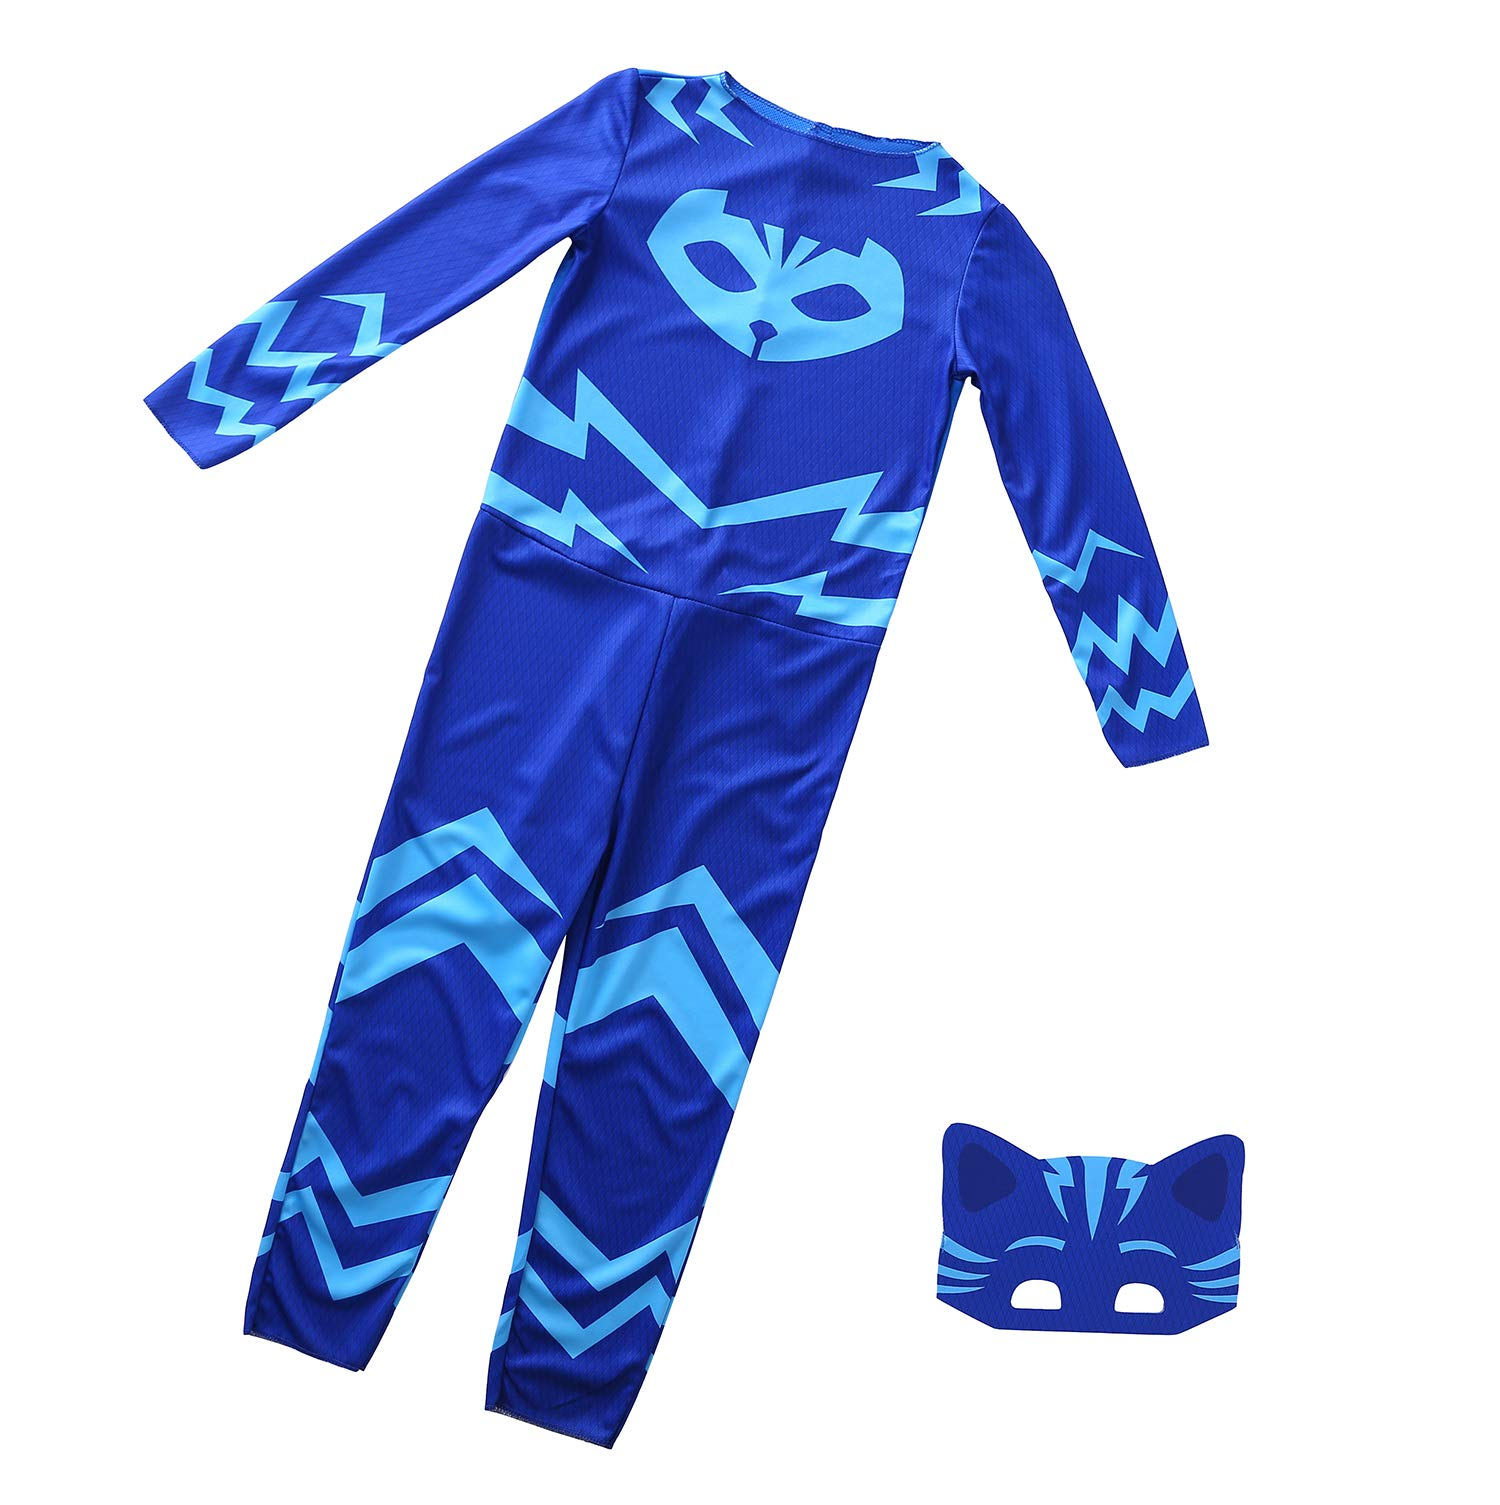 The Mass Catboy Classic Costumes and Dress up for Kids (Aged 4-6X)